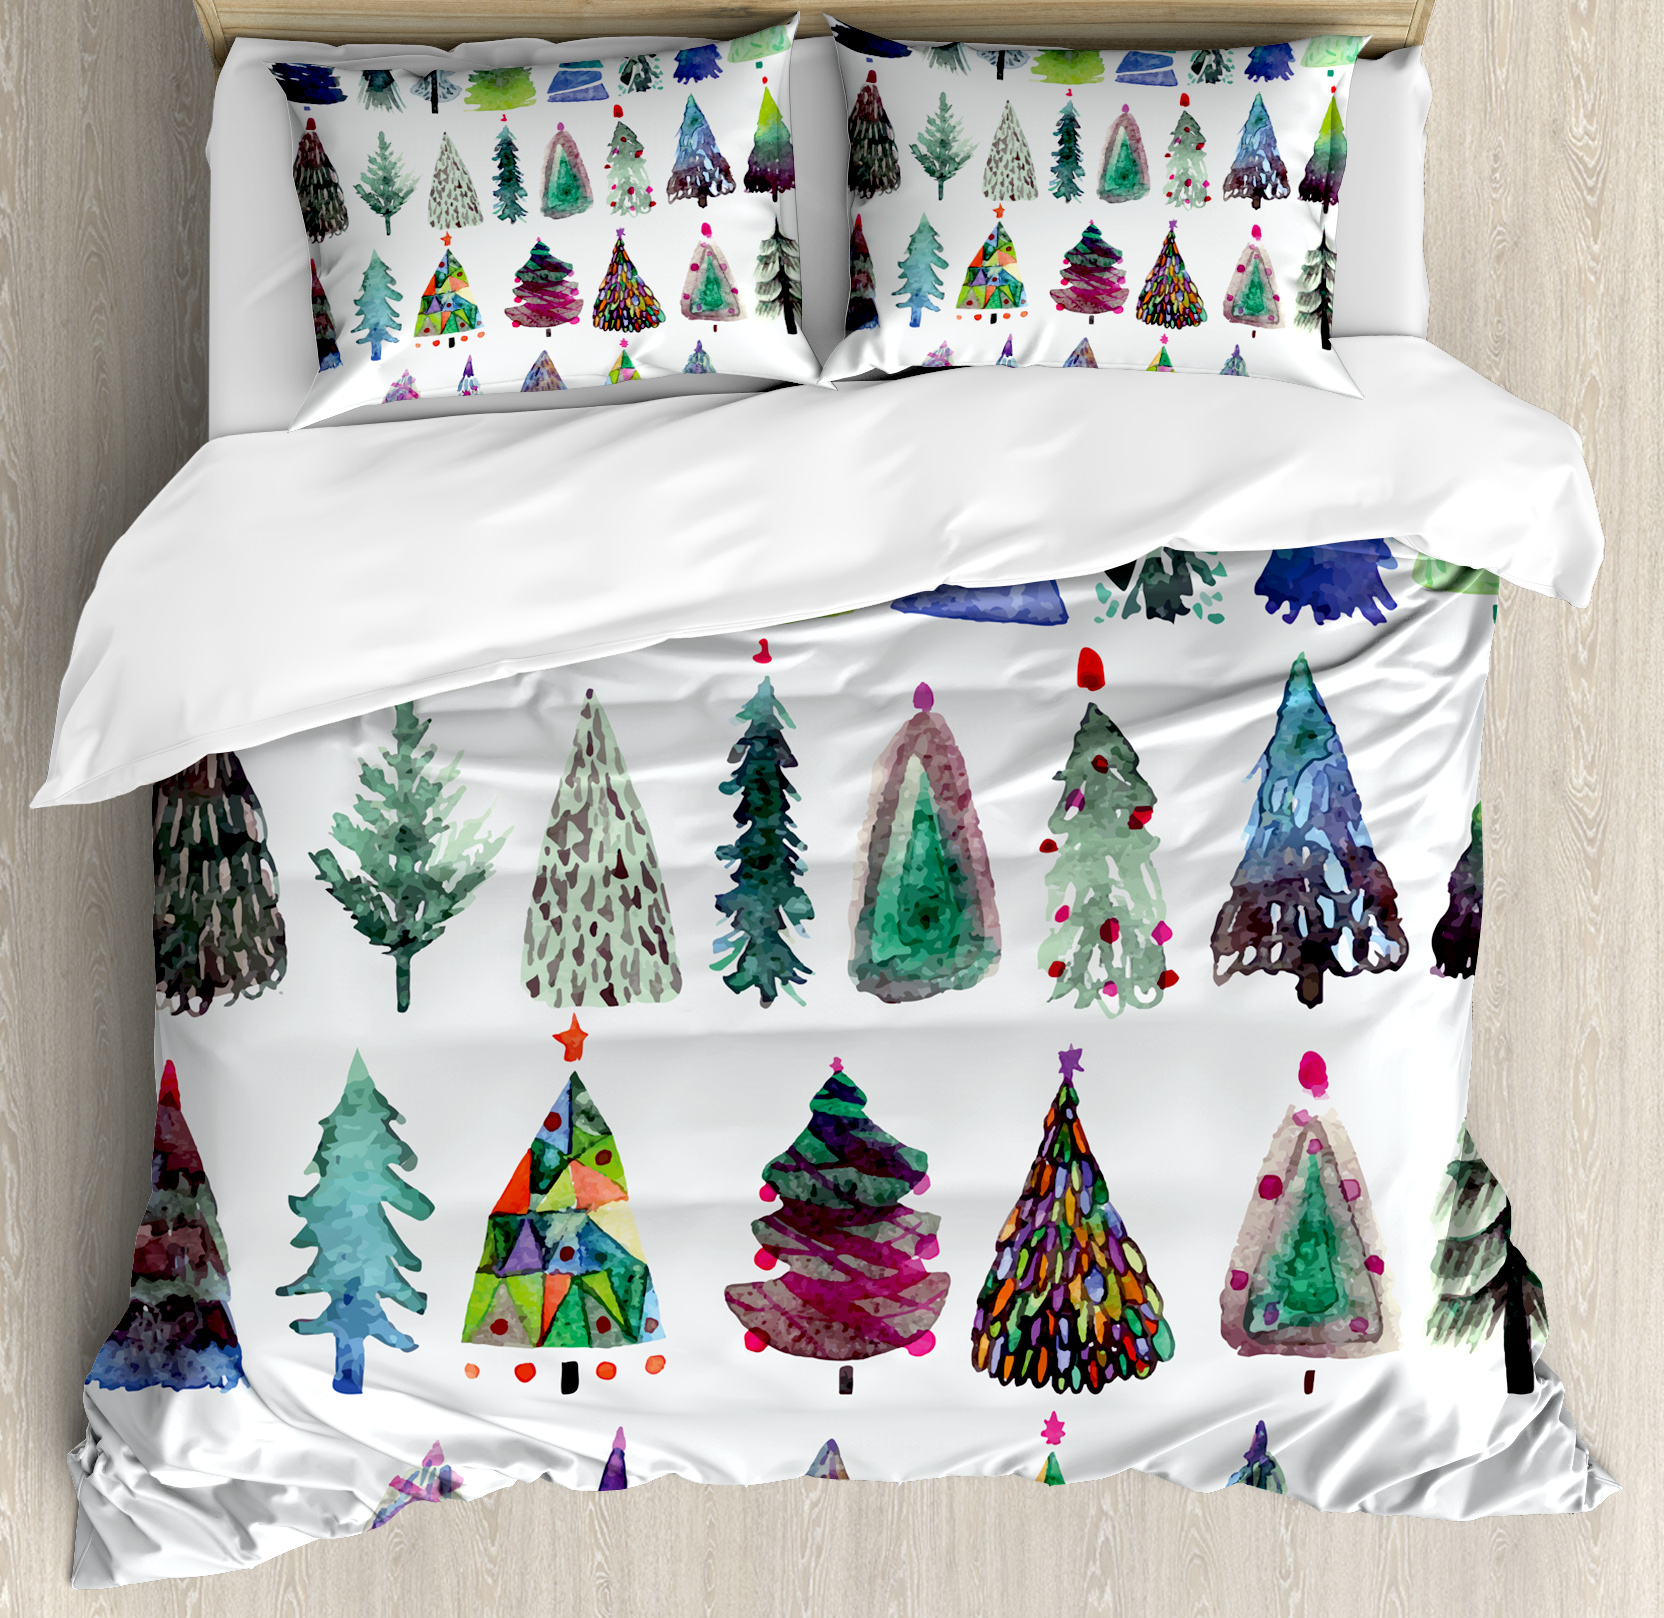 King Duvet Christmas King Size Duvet Cover Set Big Collection Of Watercolor Christmas Fir Trees Artistic Abstract Silhouettes Decorative 3 Piece Bedding Set